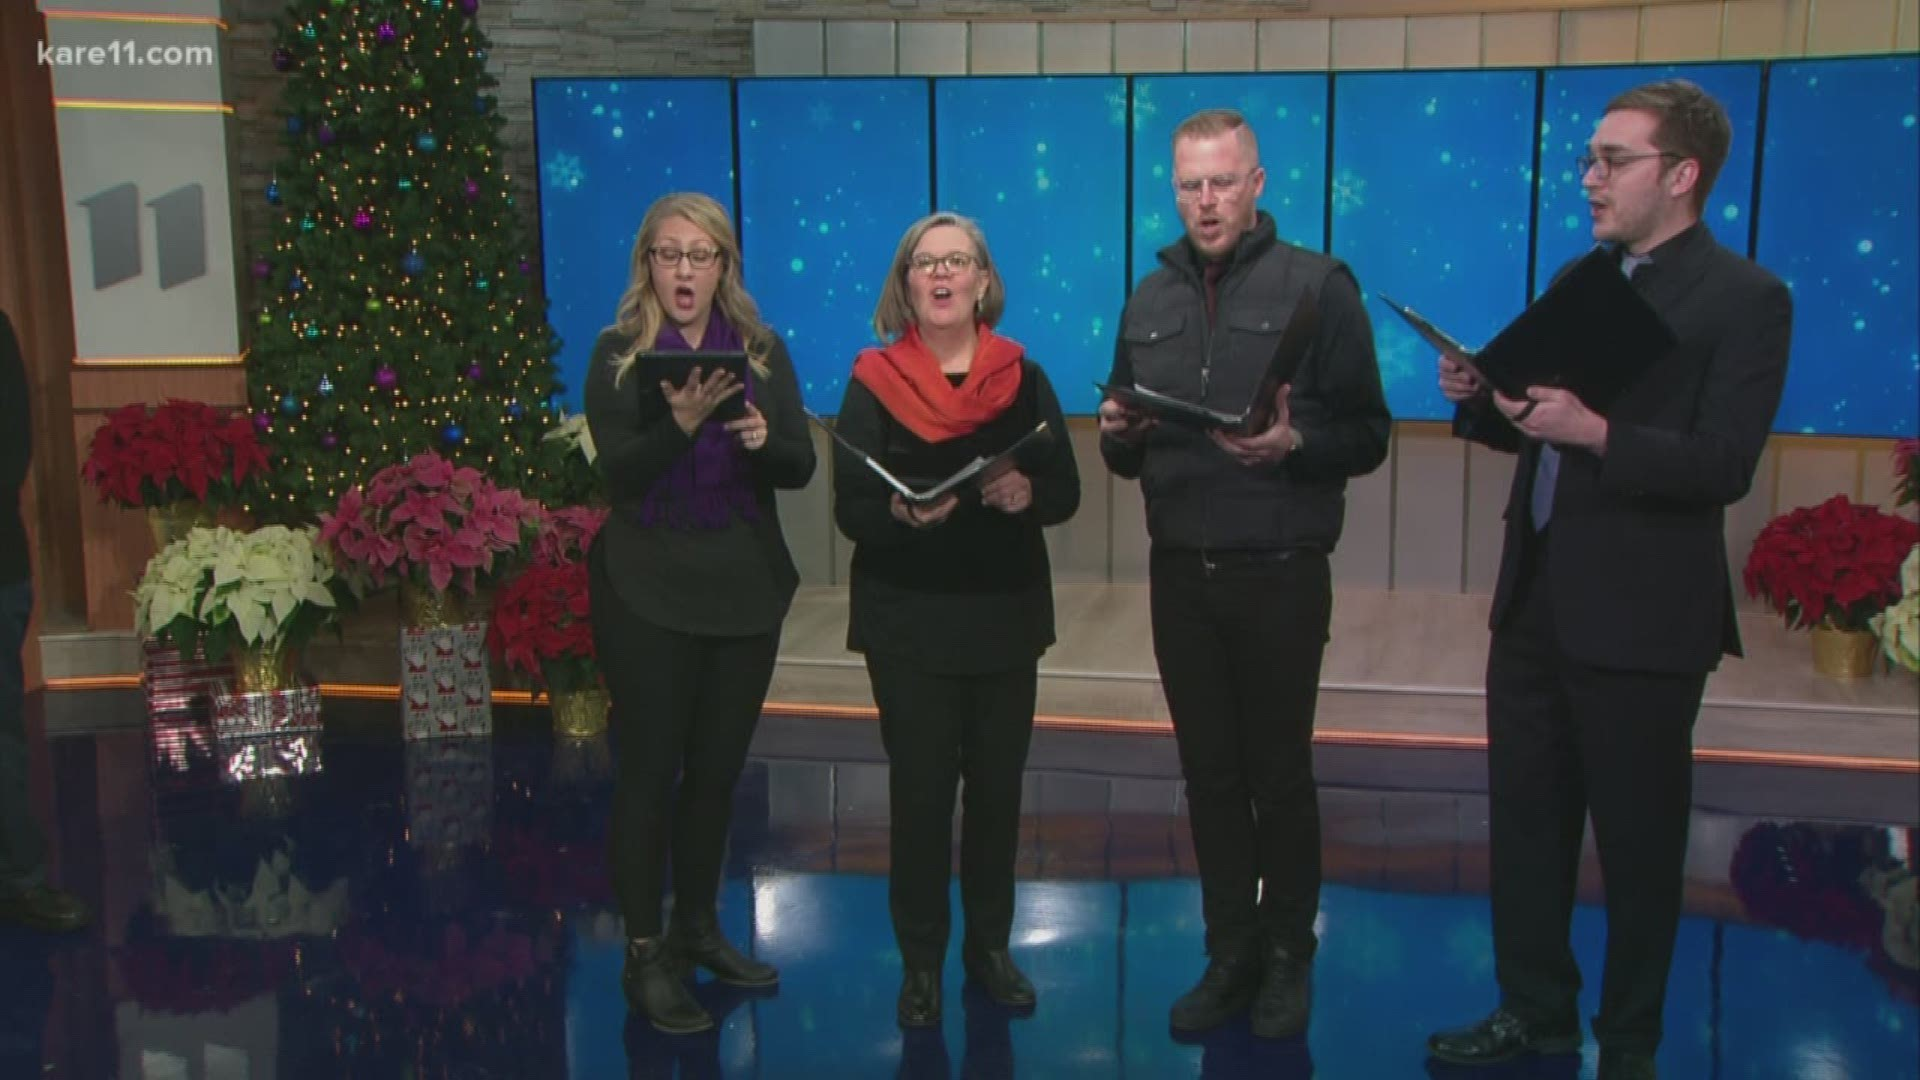 VocalEssence welcomes Christmas concert series | kare11.com